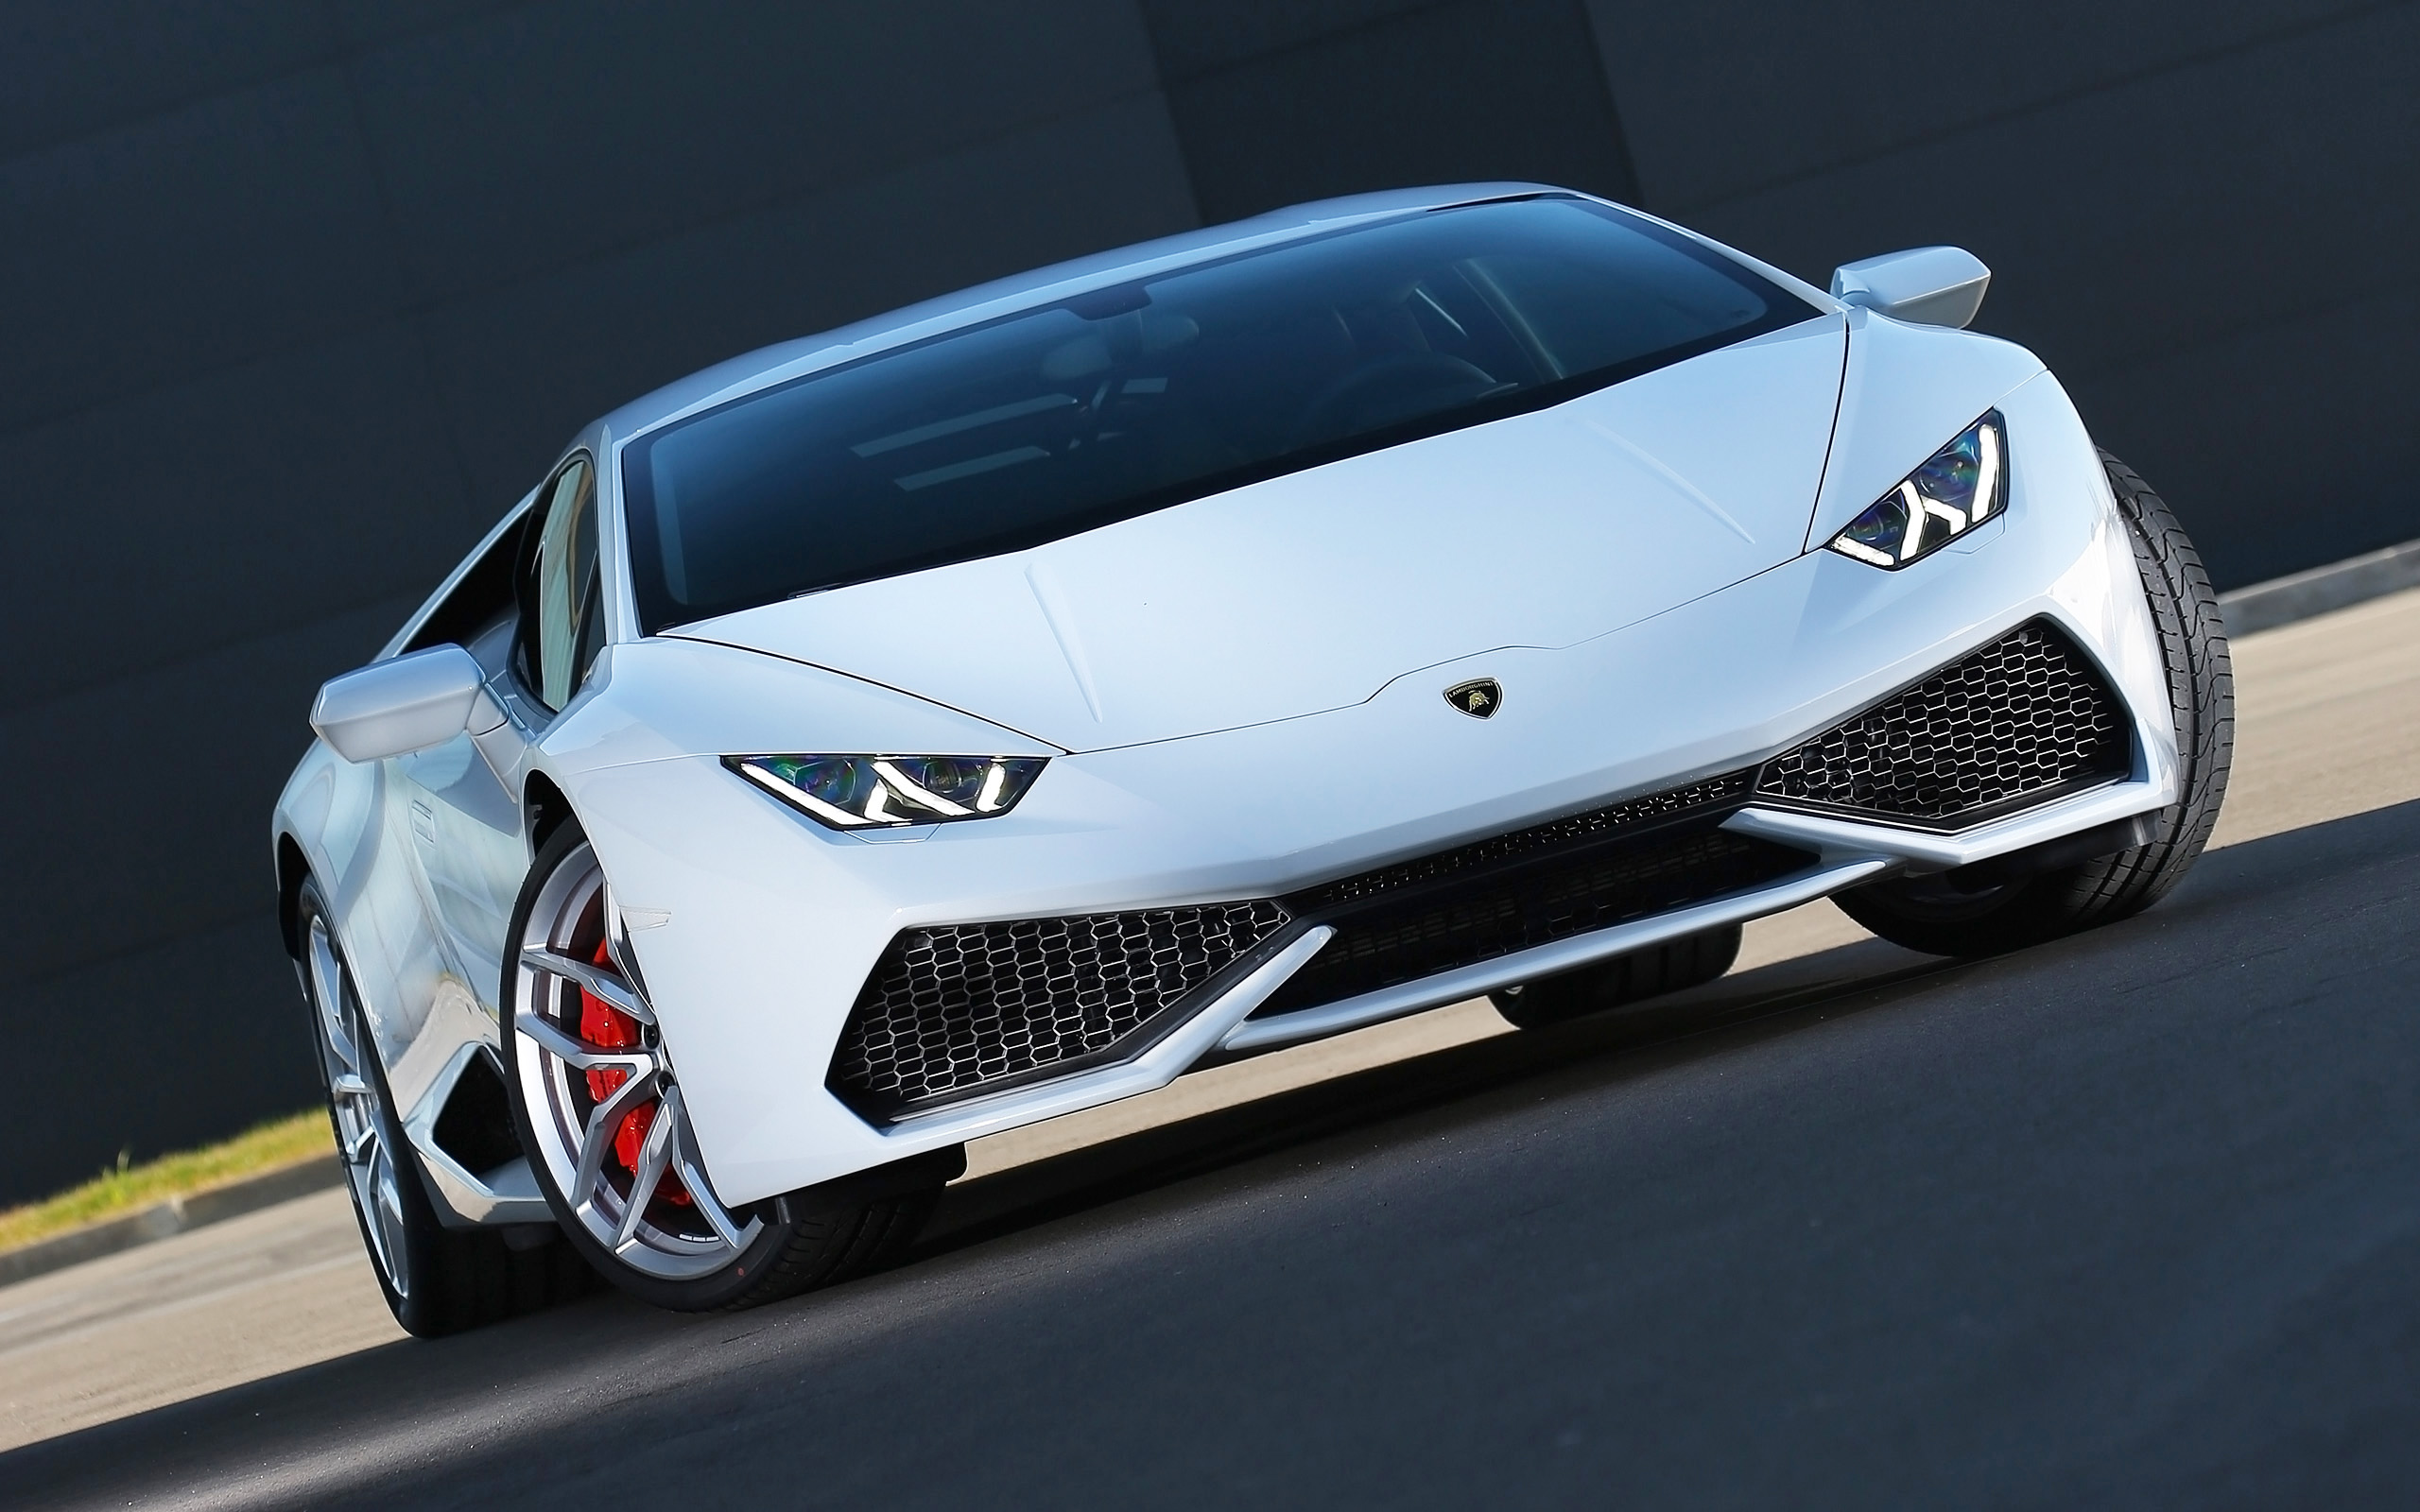 lamborghini huracan lp610 4 2014 wallpaper hd car wallpapers. Black Bedroom Furniture Sets. Home Design Ideas